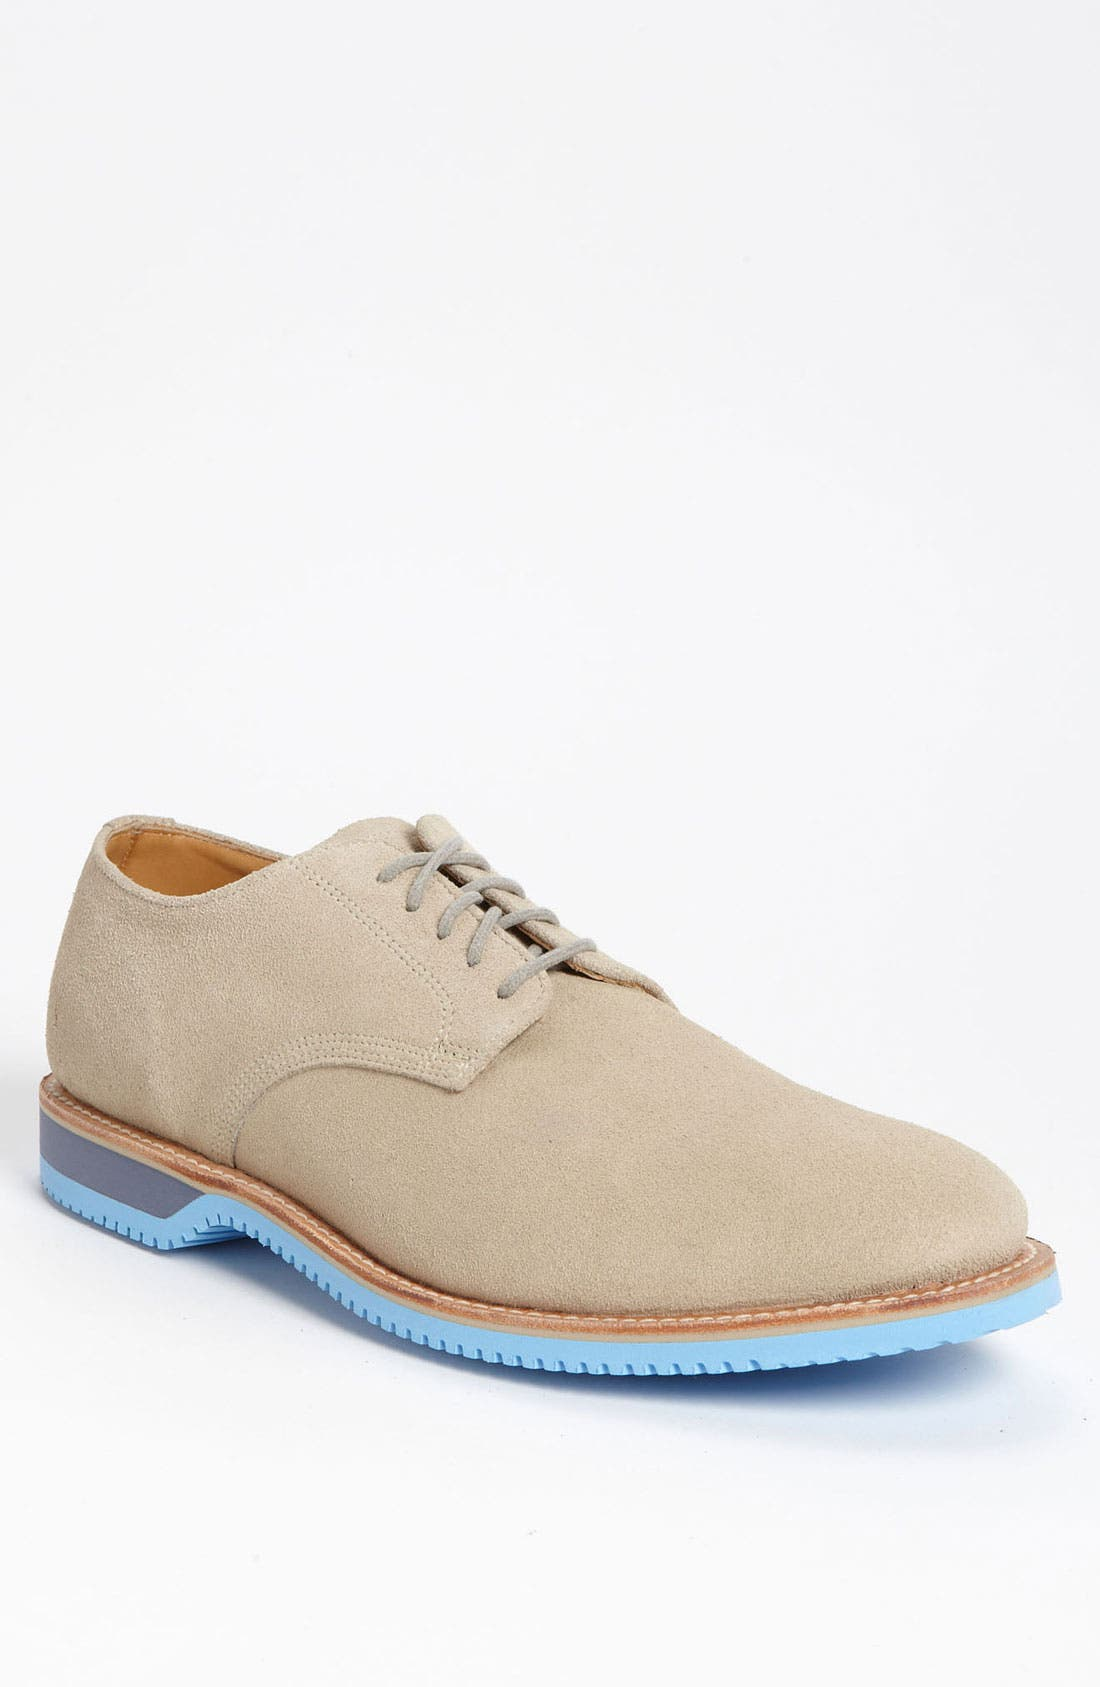 Alternate Image 1 Selected - Walk-Over 'Chase' Buck Shoe